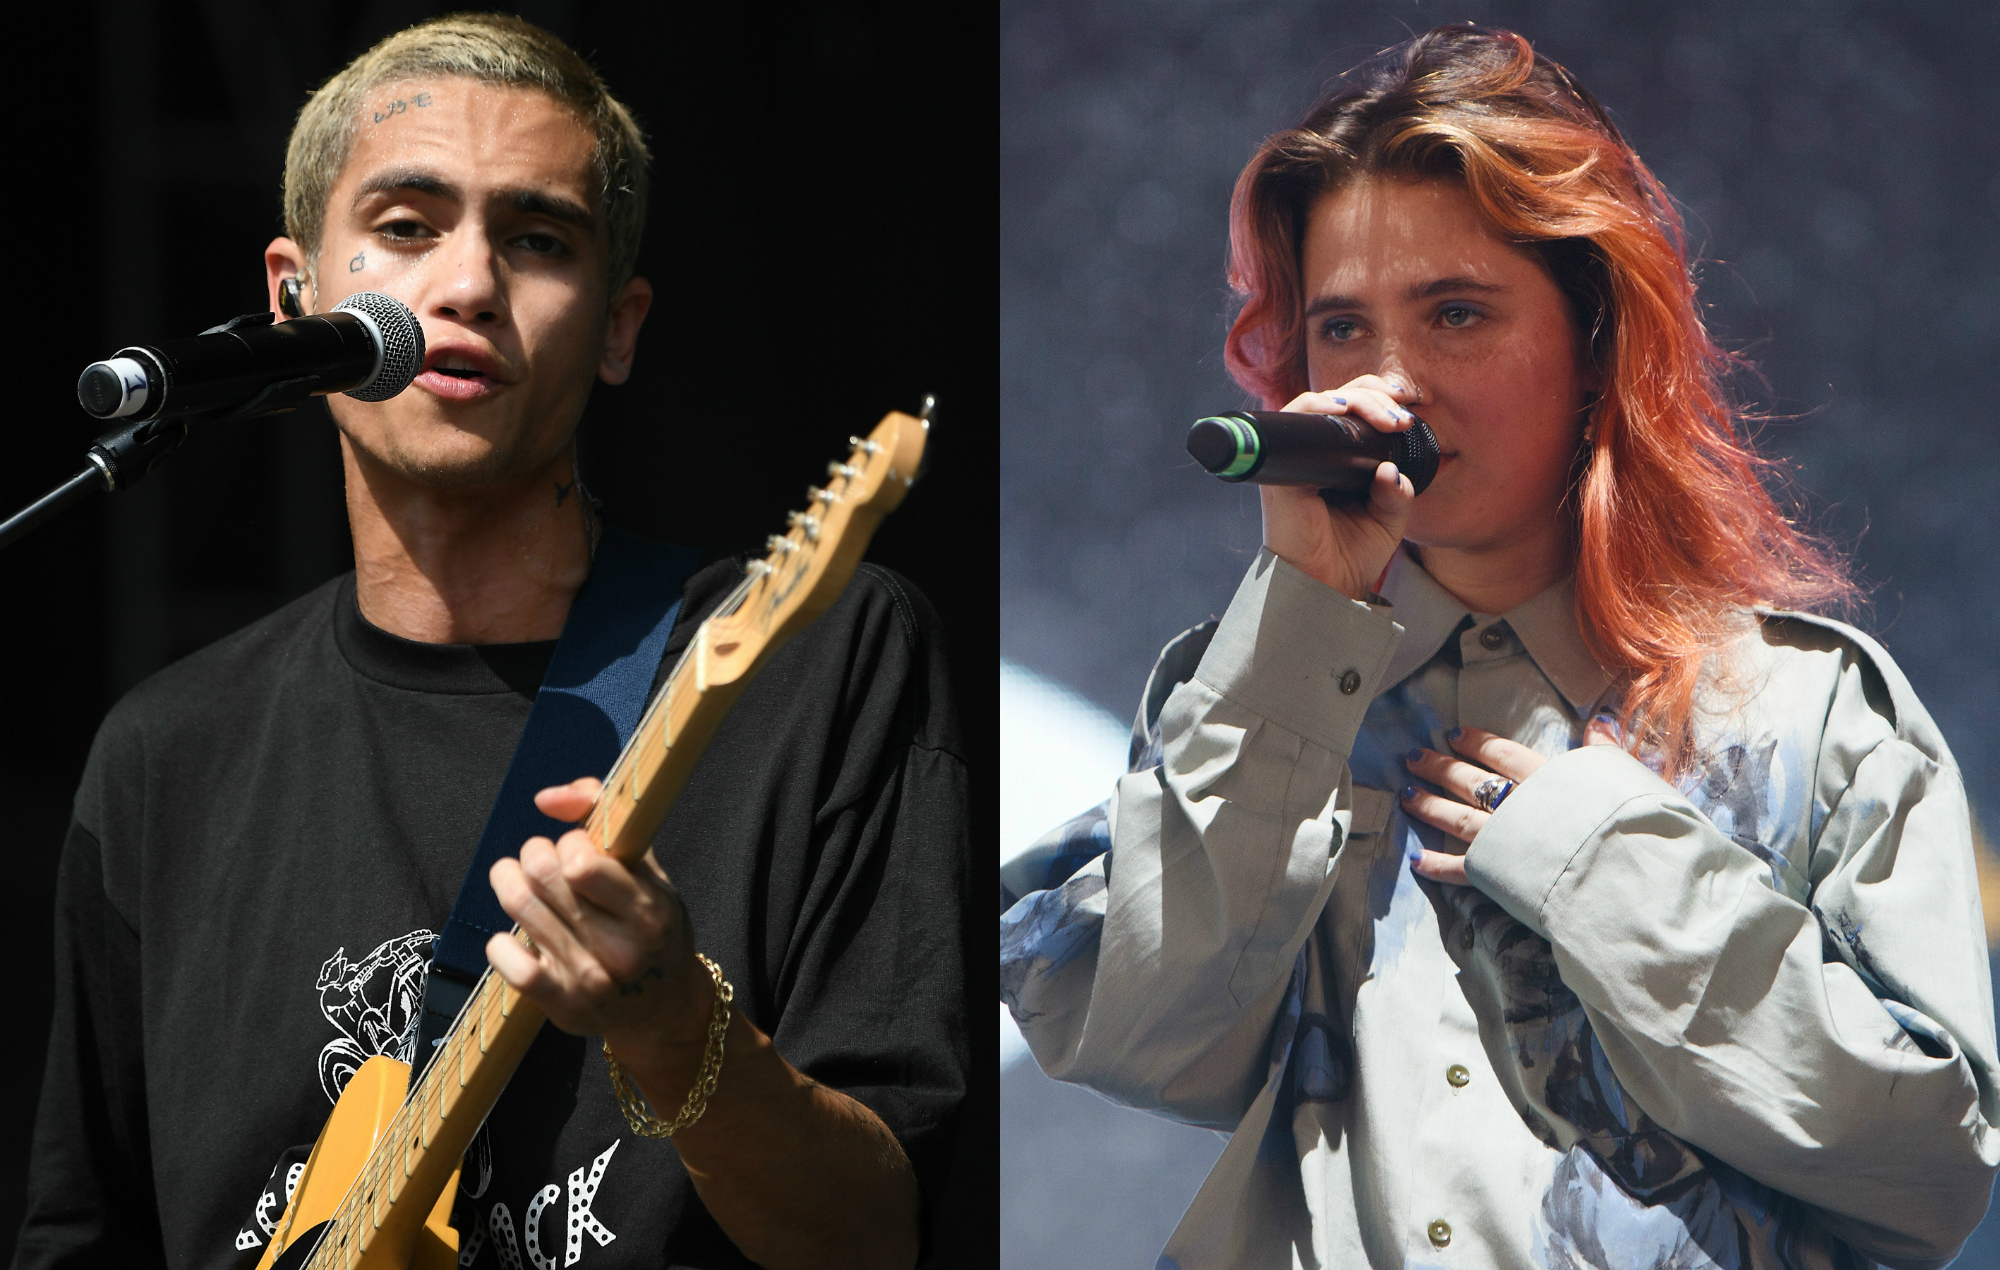 Watch Dominic Fike perform live cover of Clairo's 'Bags'